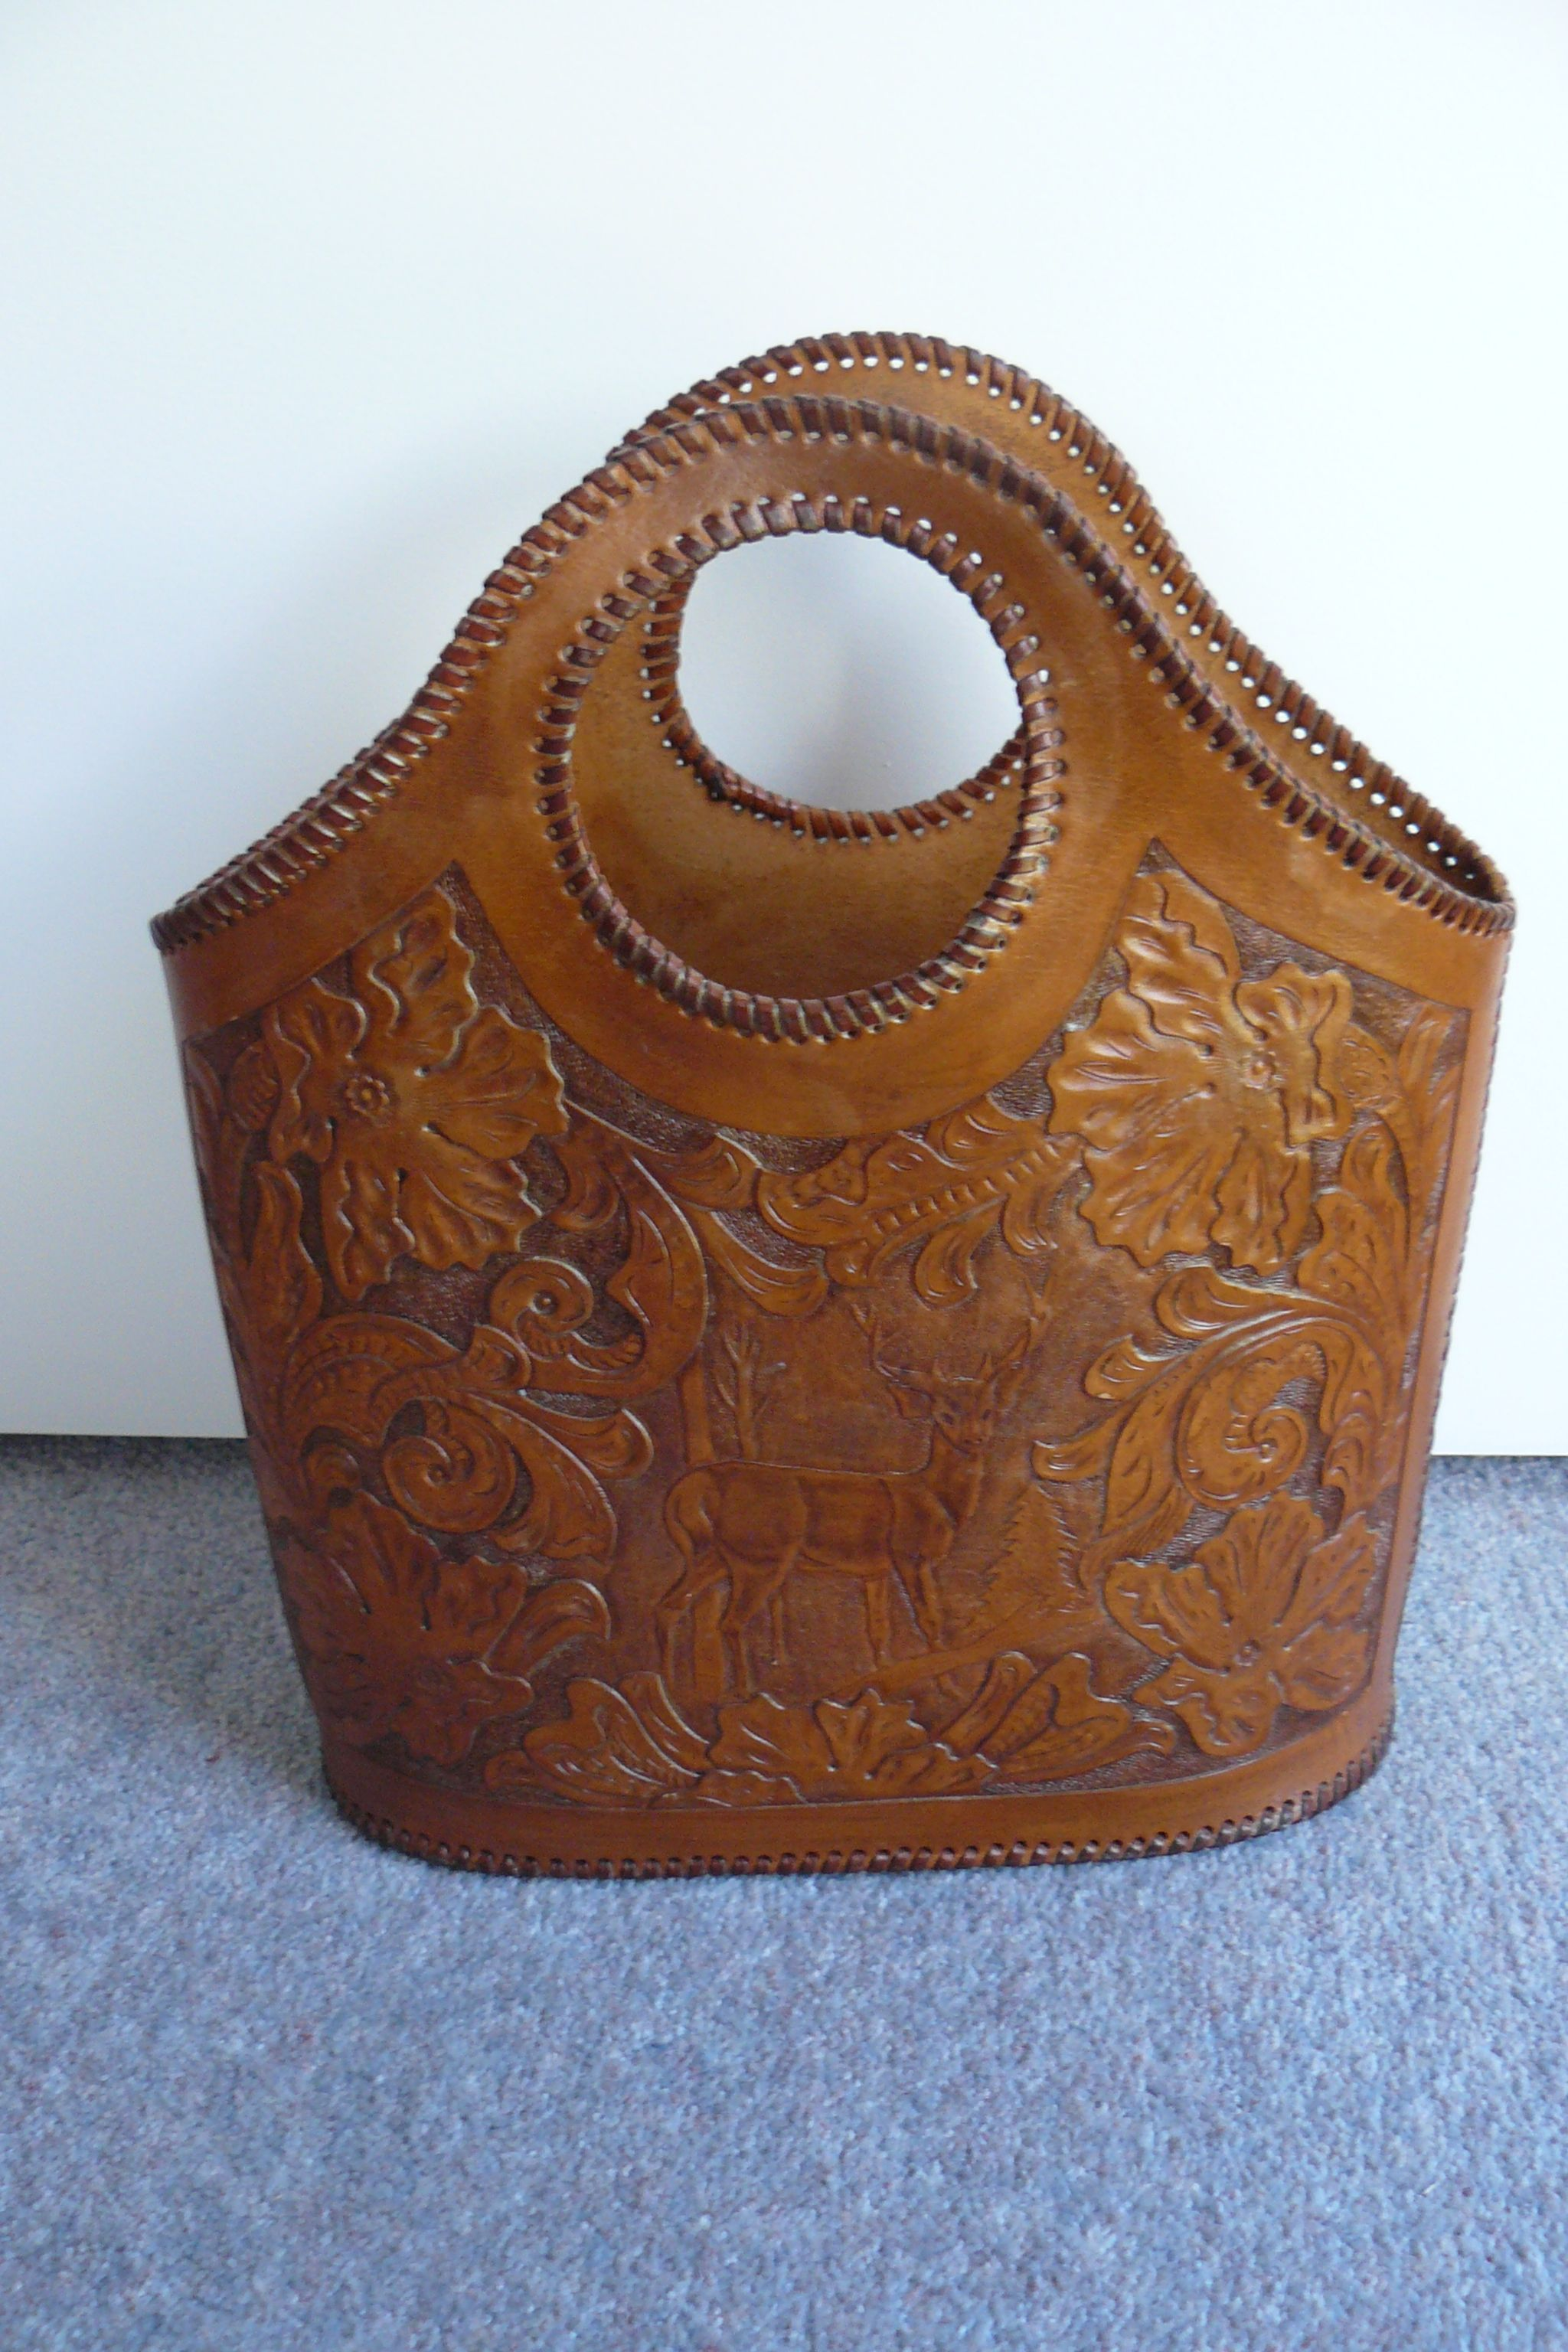 Carved leather tote bag by Grantos